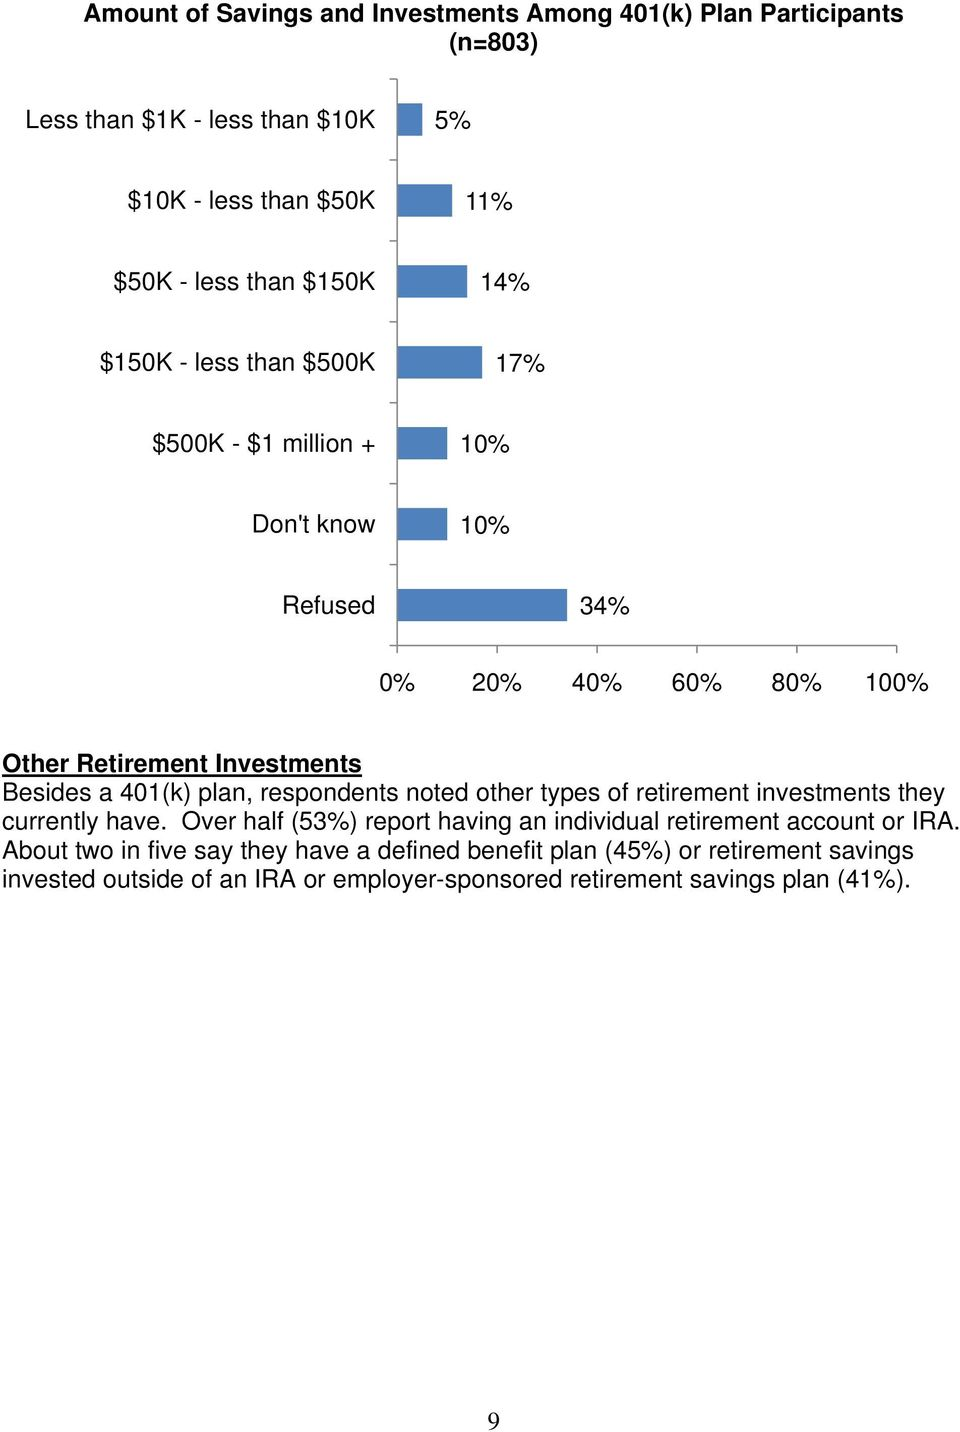 plan, respondents noted other types of retirement investments they currently have. Over half (53) report having an individual retirement account or IRA.